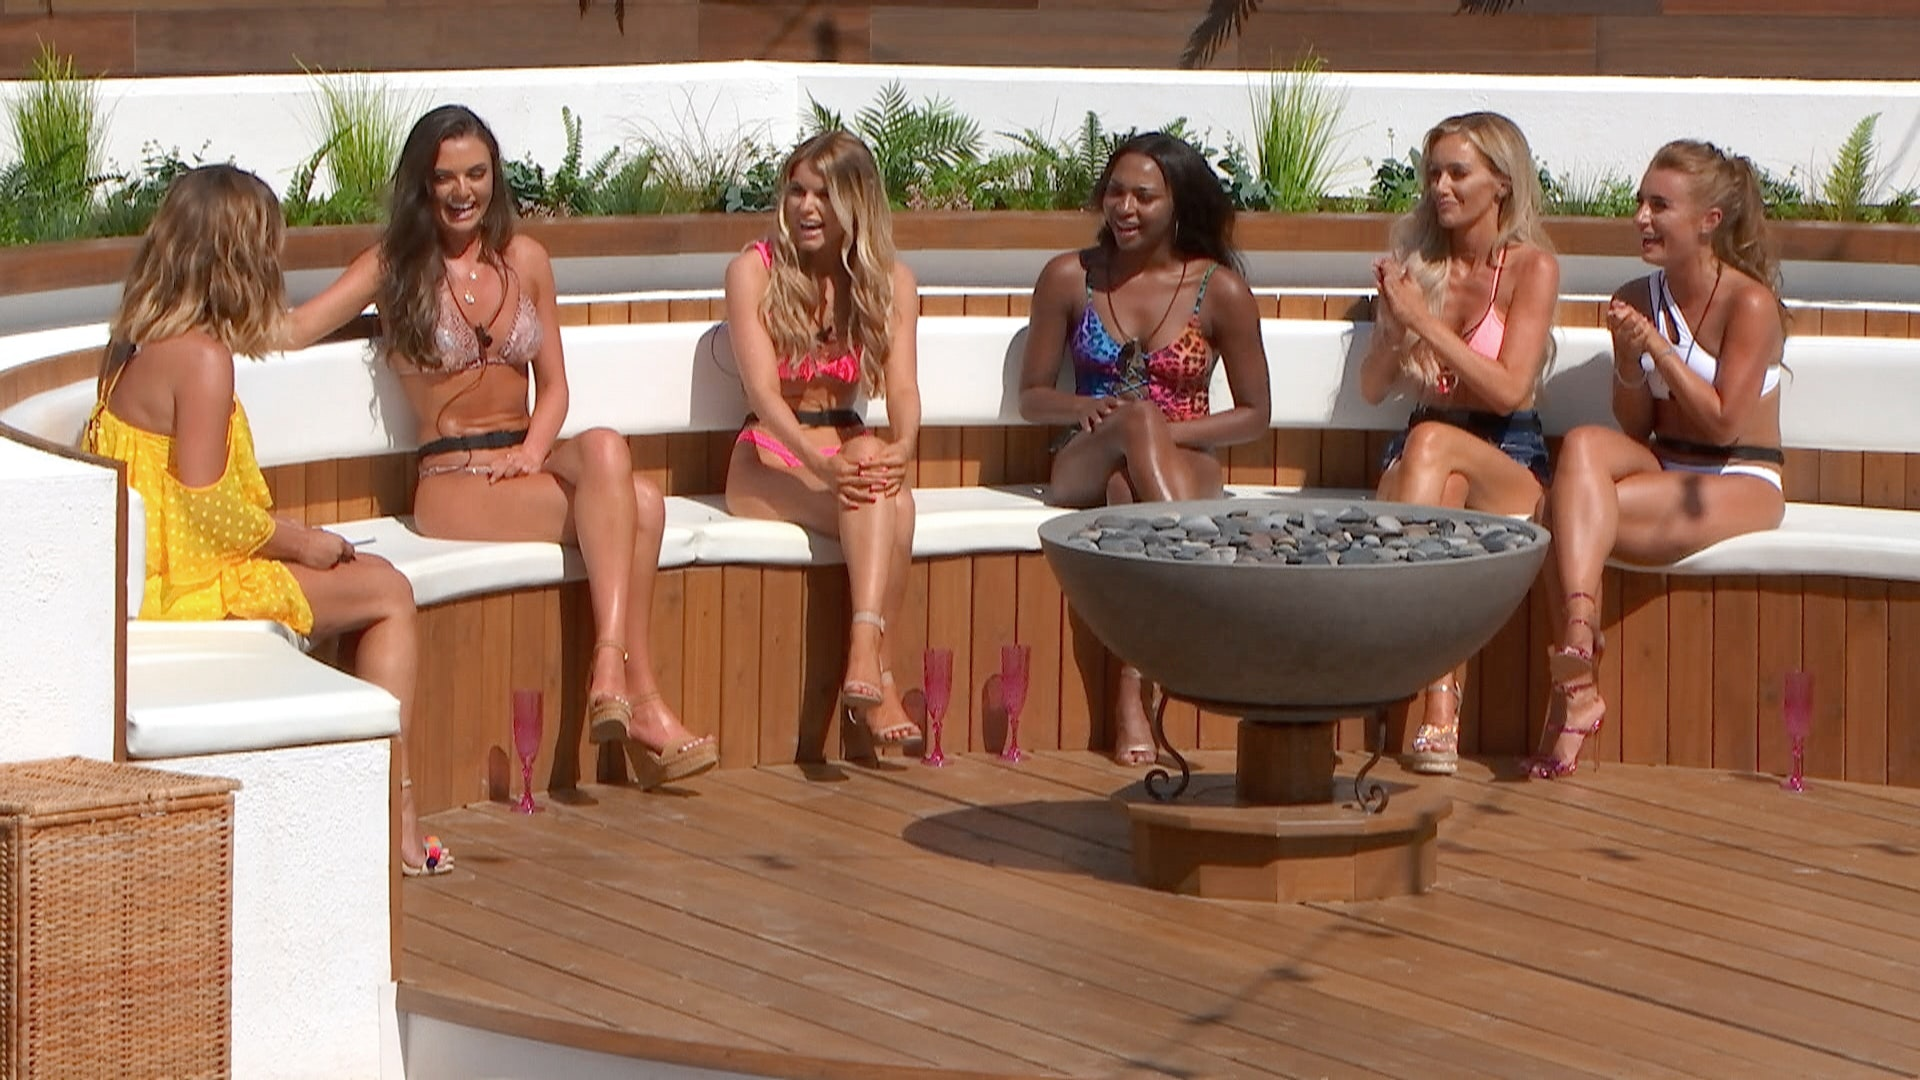 People can't actually believe the ridiculous Brexit conversation on Love Island